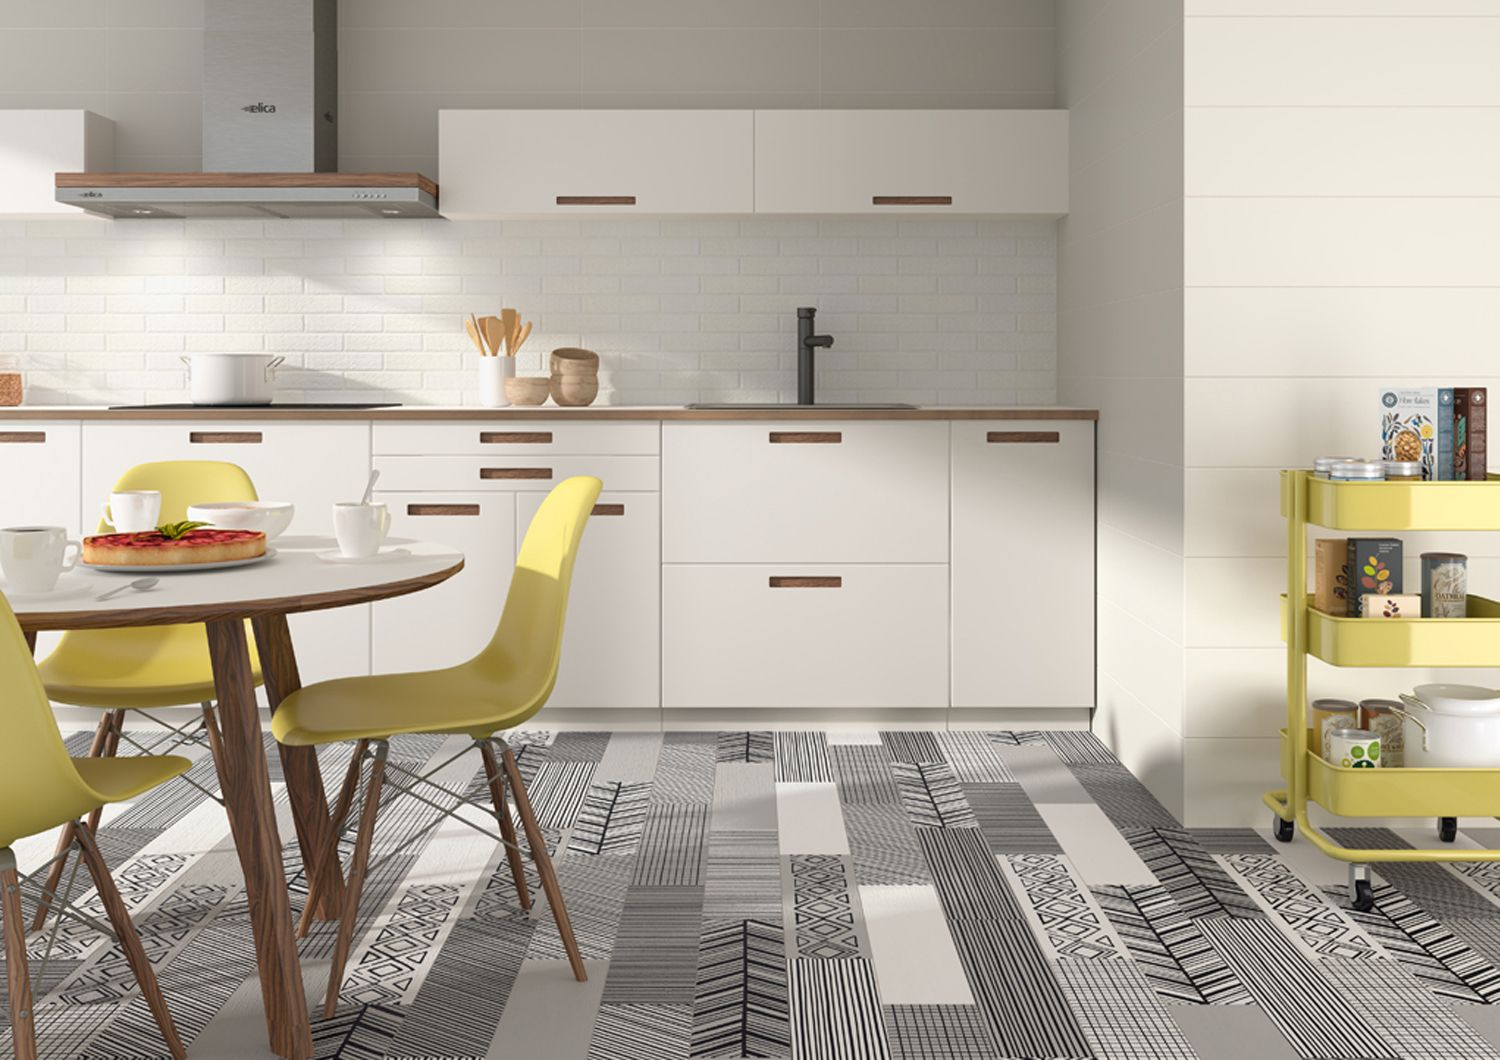 Pin By Nerly Liyana On Detail Material Kitchen Design Quirky